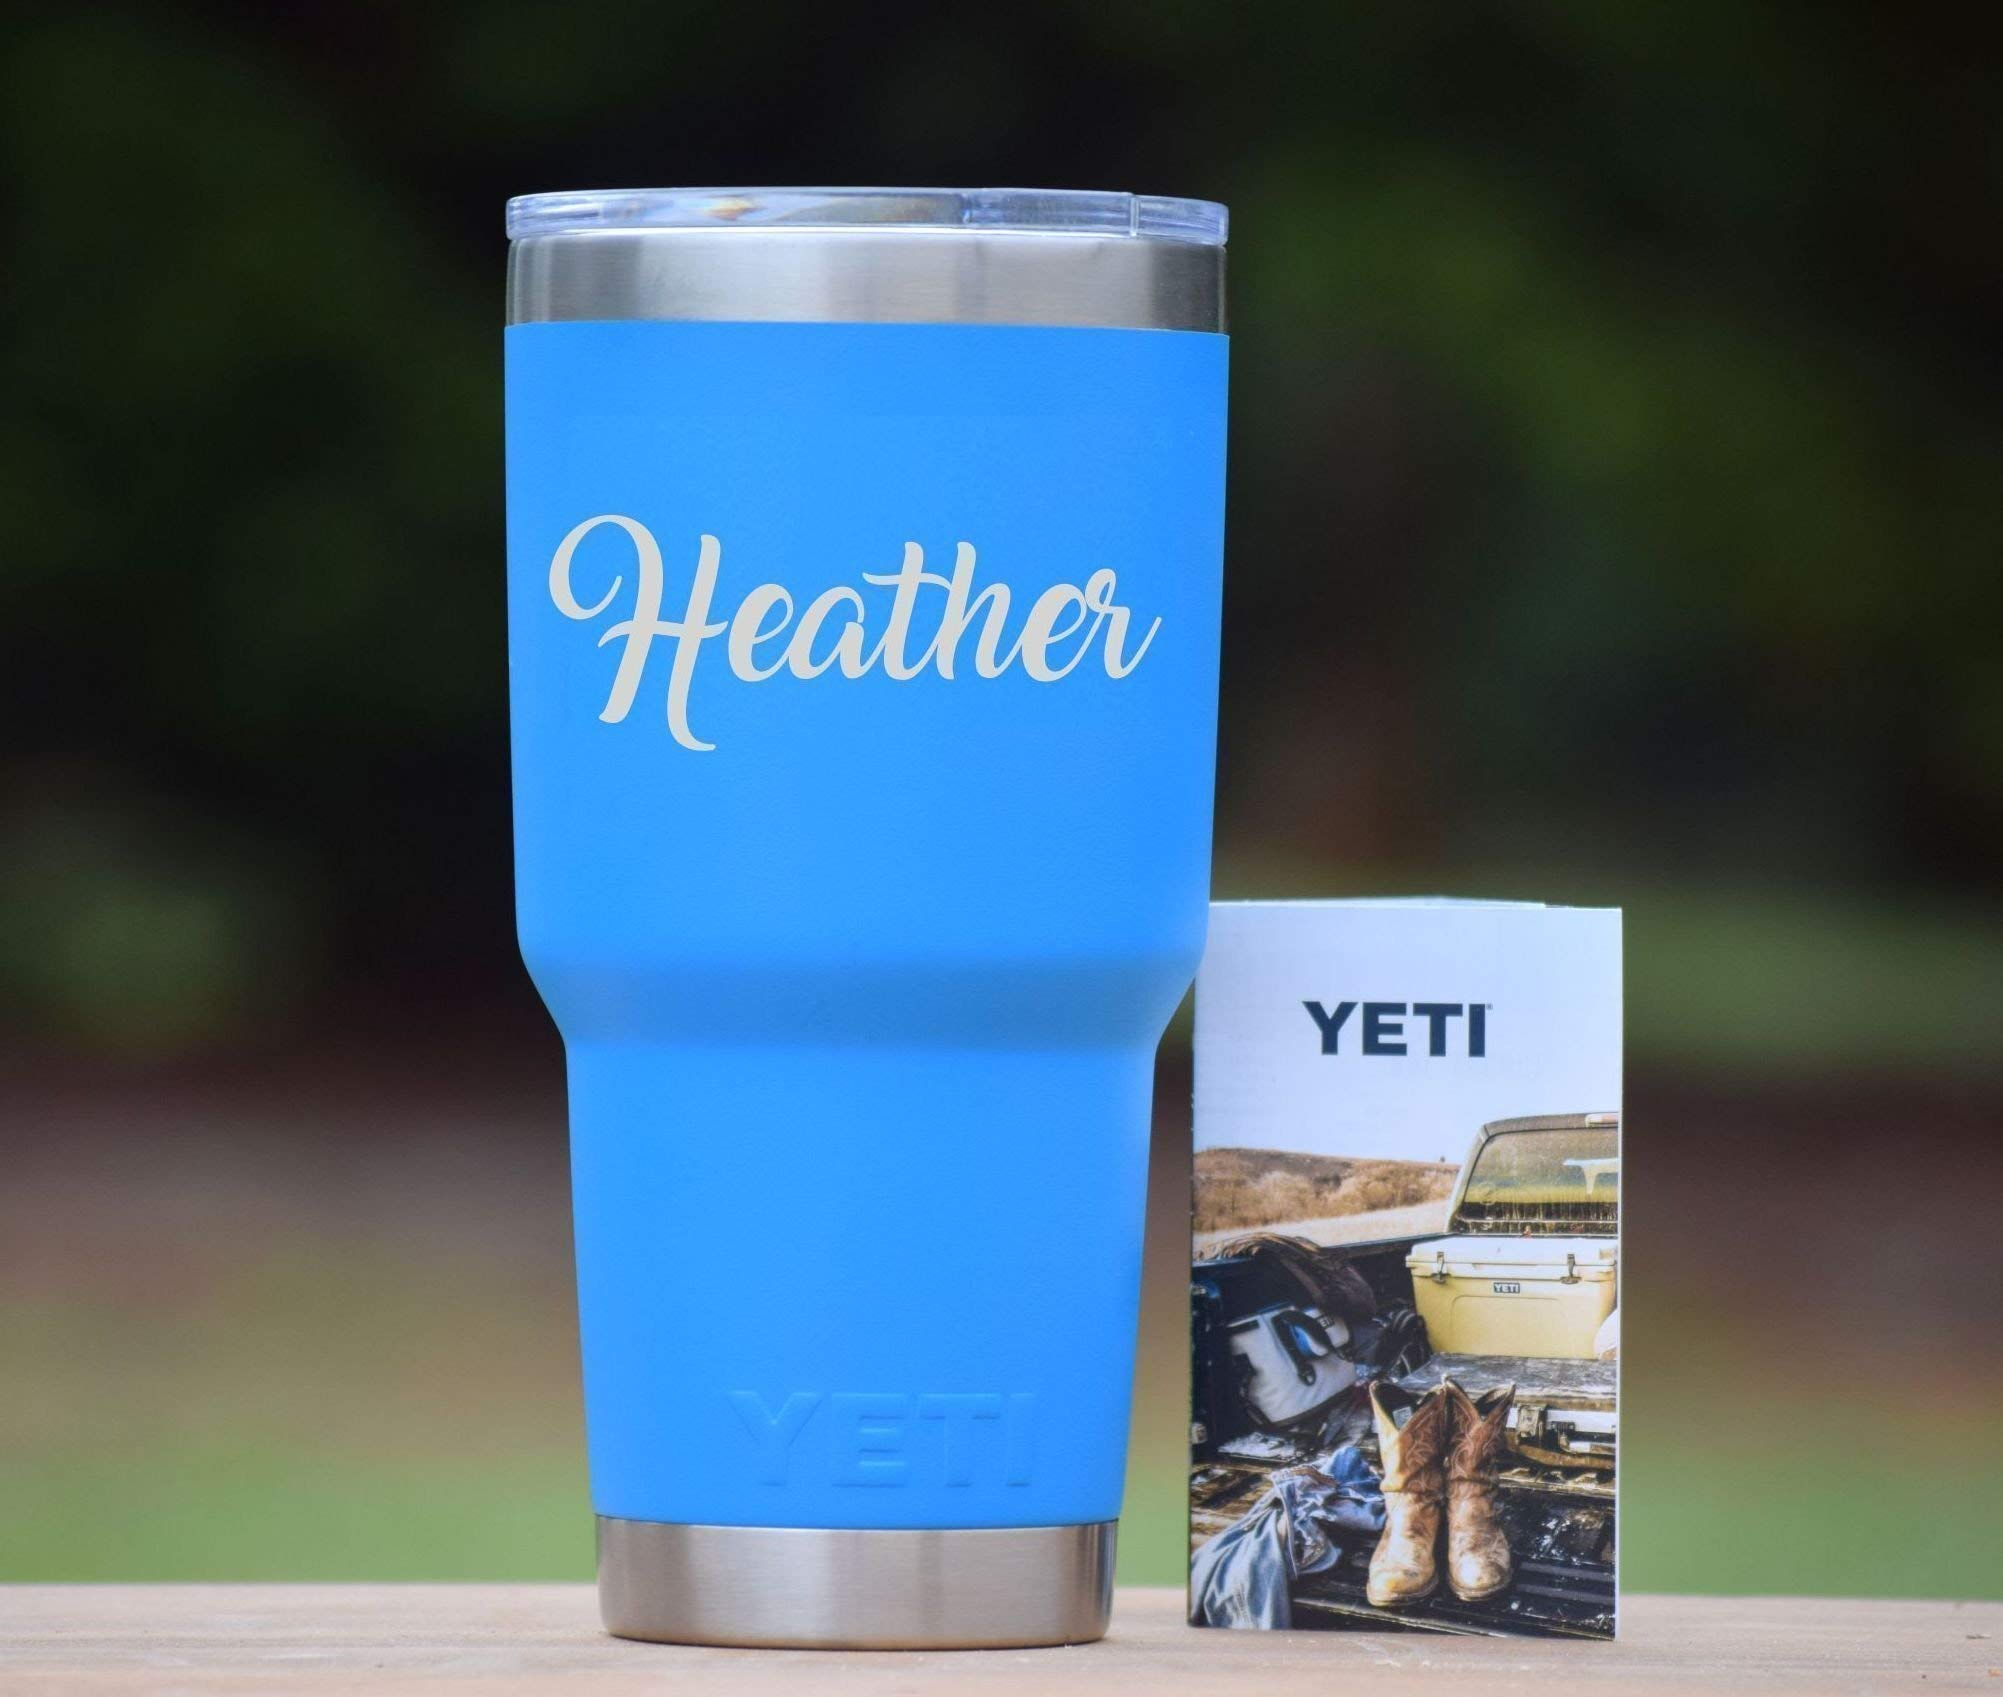 Personalized Yeti Tumbler Additional Colors Available- Engraved Yeti Rambler - 20 oz Yeti - 30 oz Yeti - Personalized Yeti - Yeti Gift - Laser Engraved Yeti - Yeti Tumbler - Yeti Cup - Yeti for Men